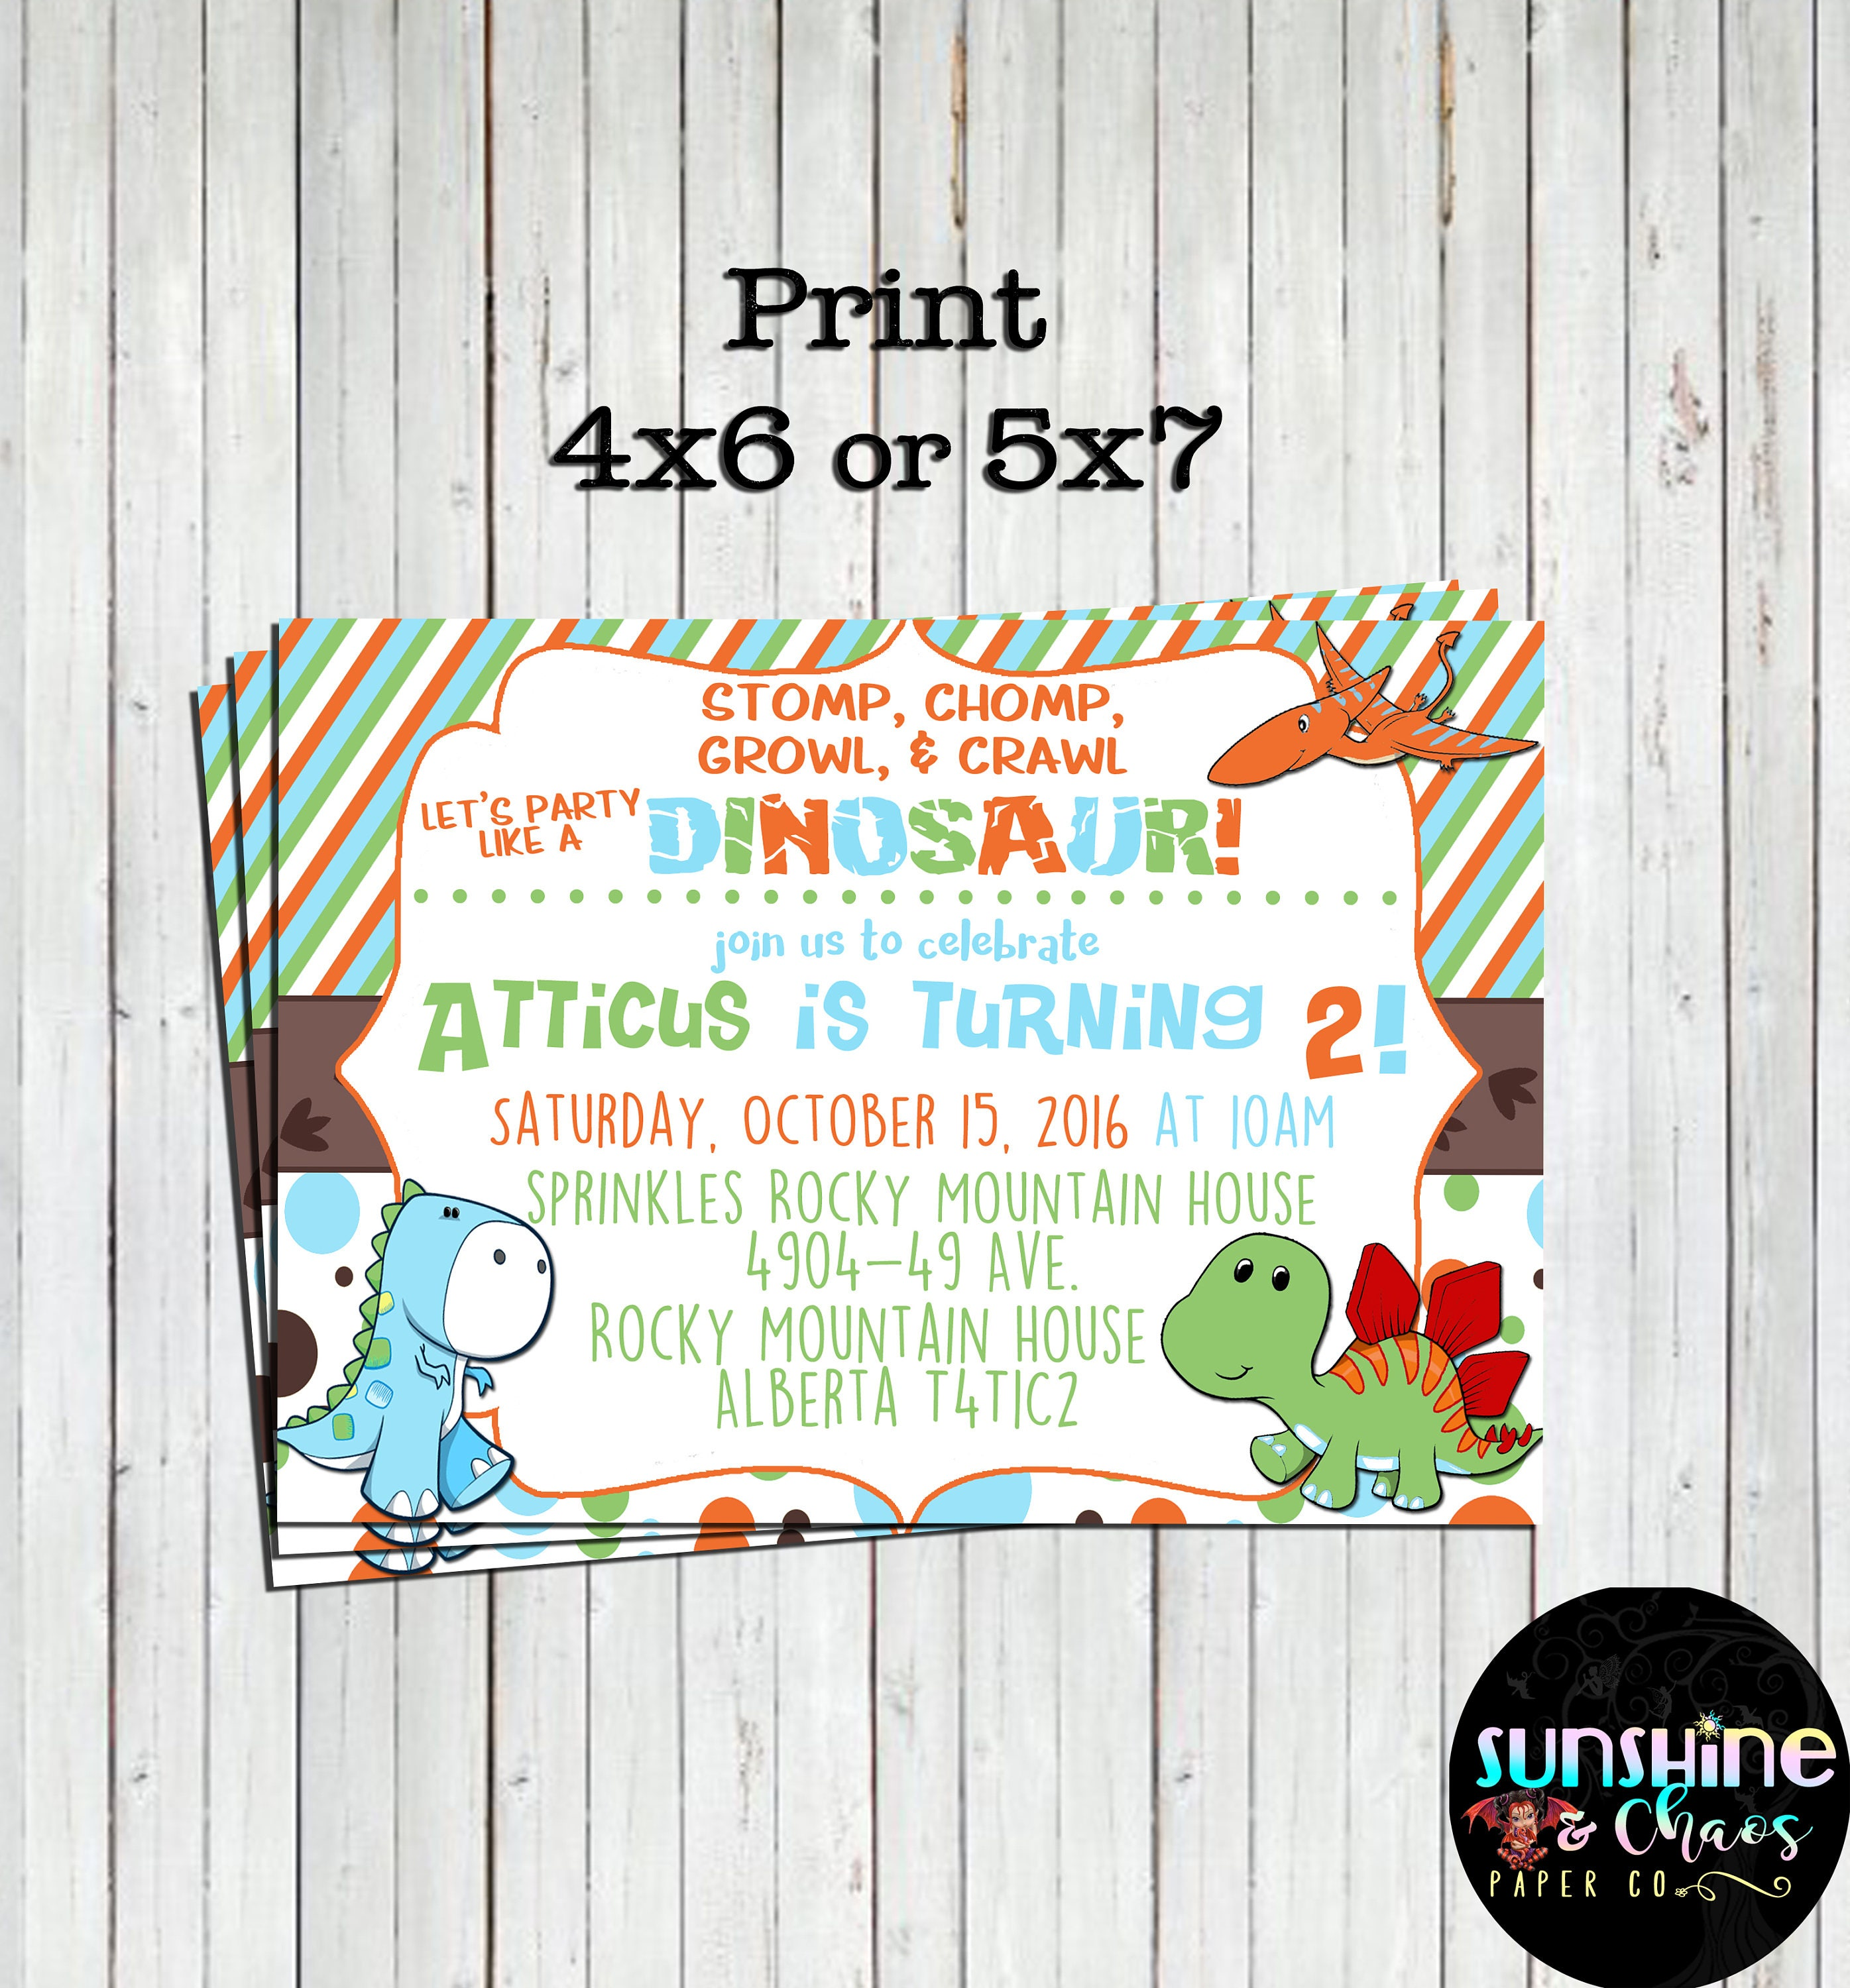 Cute Dinosaur Invitation Dinosaur Birthday Dinosaur Invites | Etsy